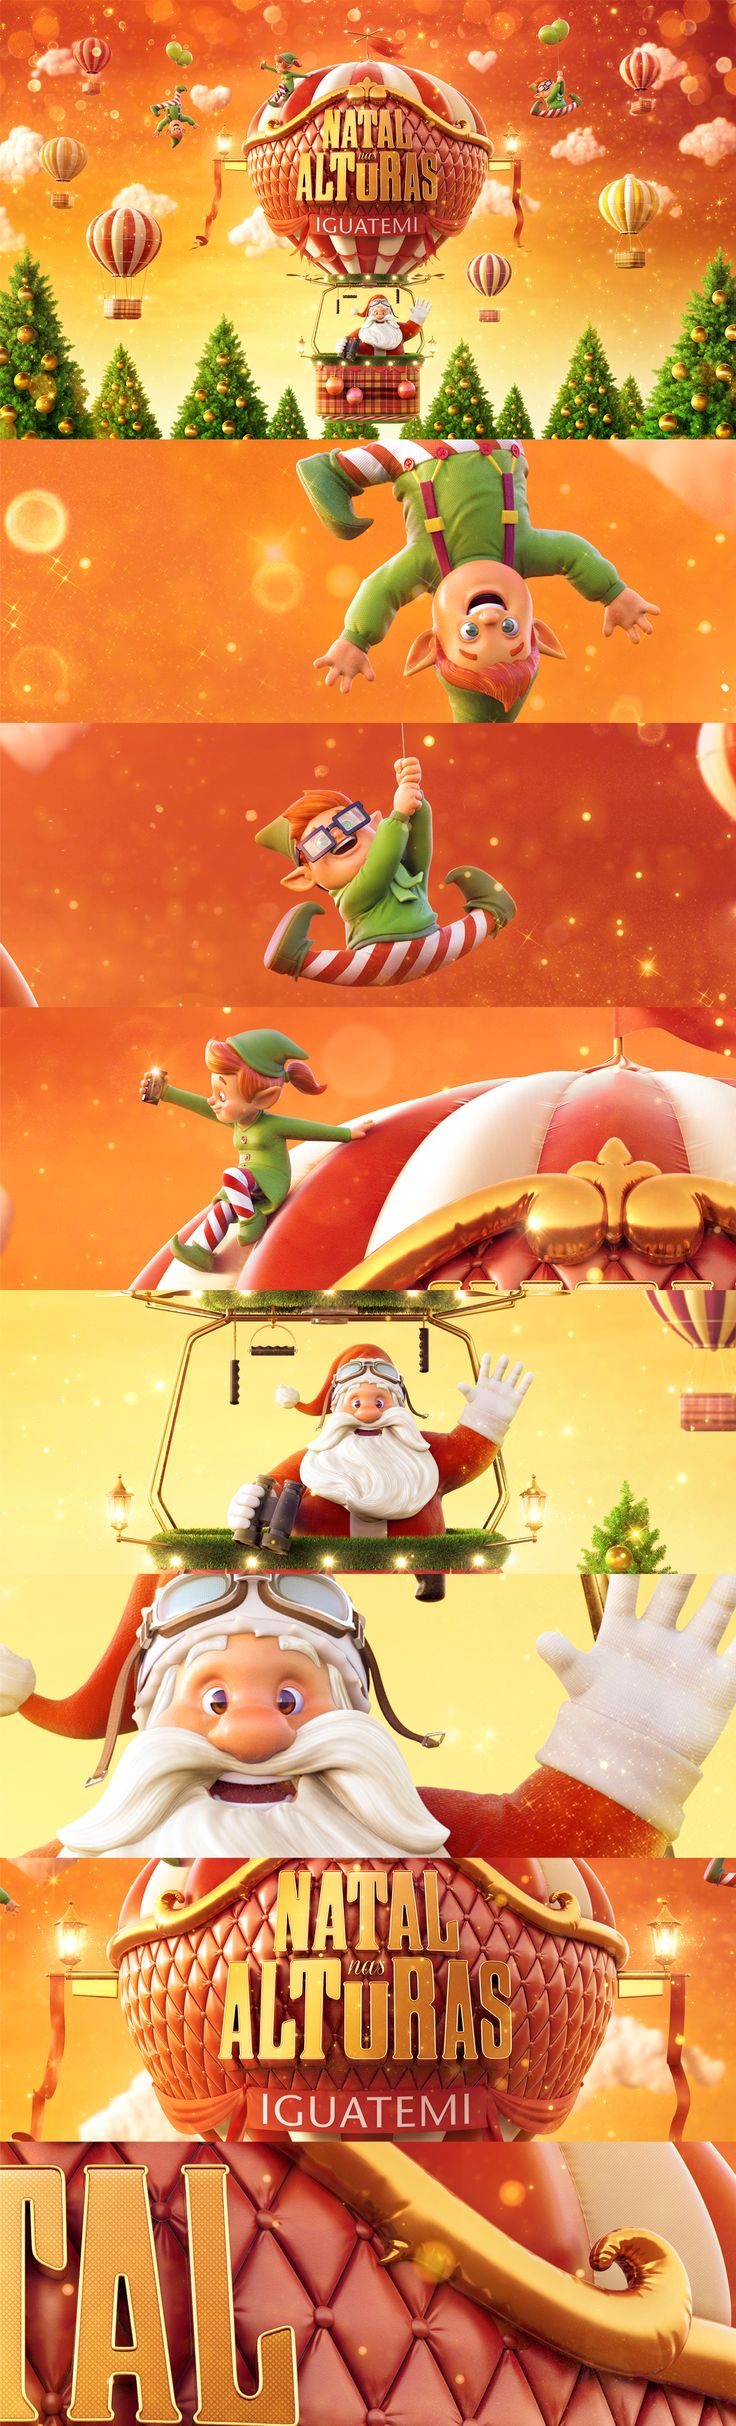 "Image produced to Iguatemi campaign ""Christmas through DM9SUL Agency."